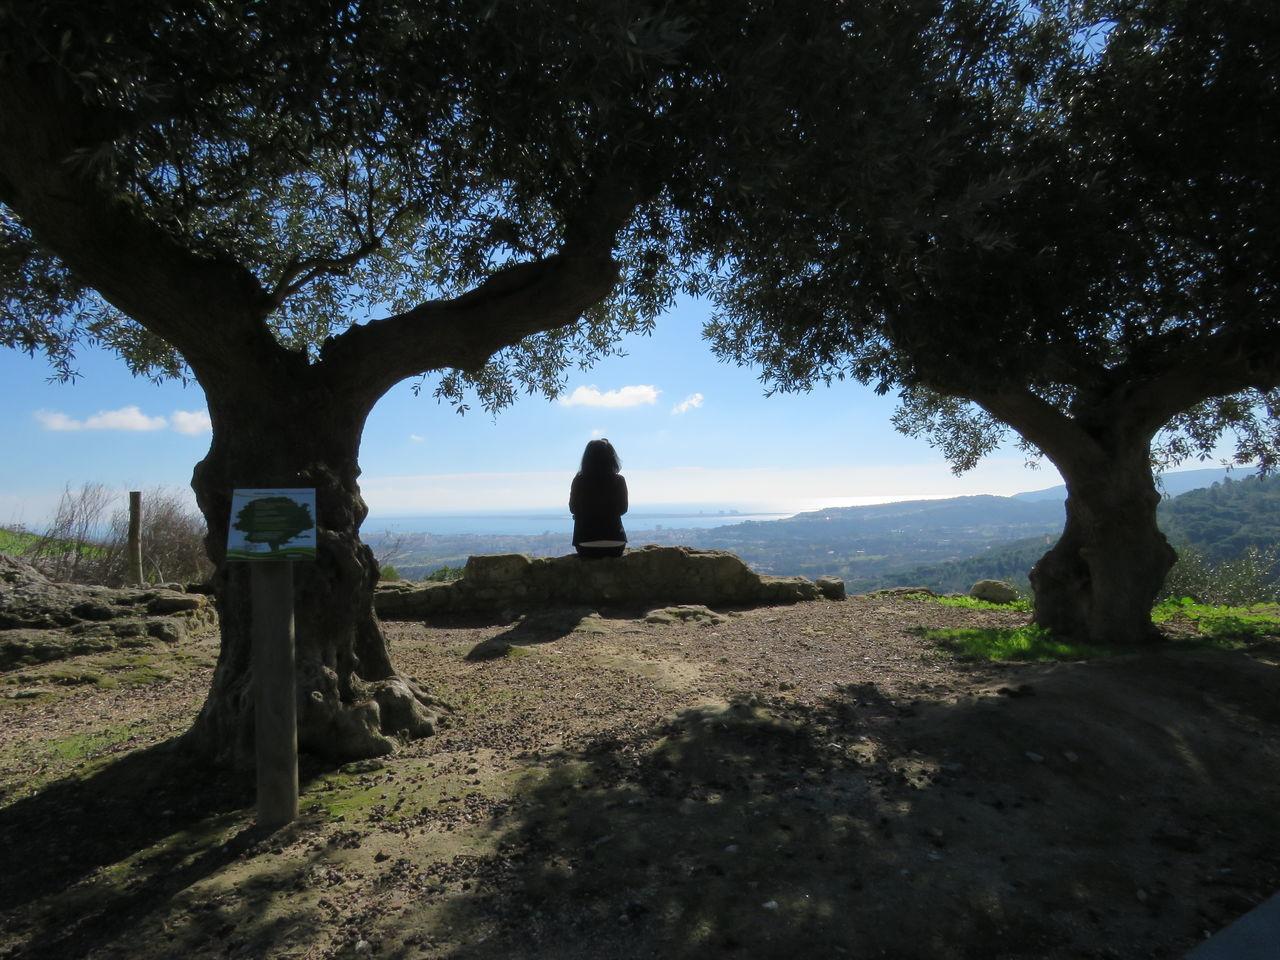 Beautiful View Beauty In Nature Day Girl With Green Jacket Growth Landscape Nature Olive Tree Outdoors People Real People Rear View Relaxing Moments Scenics Sightseeing Sitting Sitting Alone Sitting Outside What Who Where Enjoy The New Normal Tranquil Scene Tranquility Tree Woman Young Woman